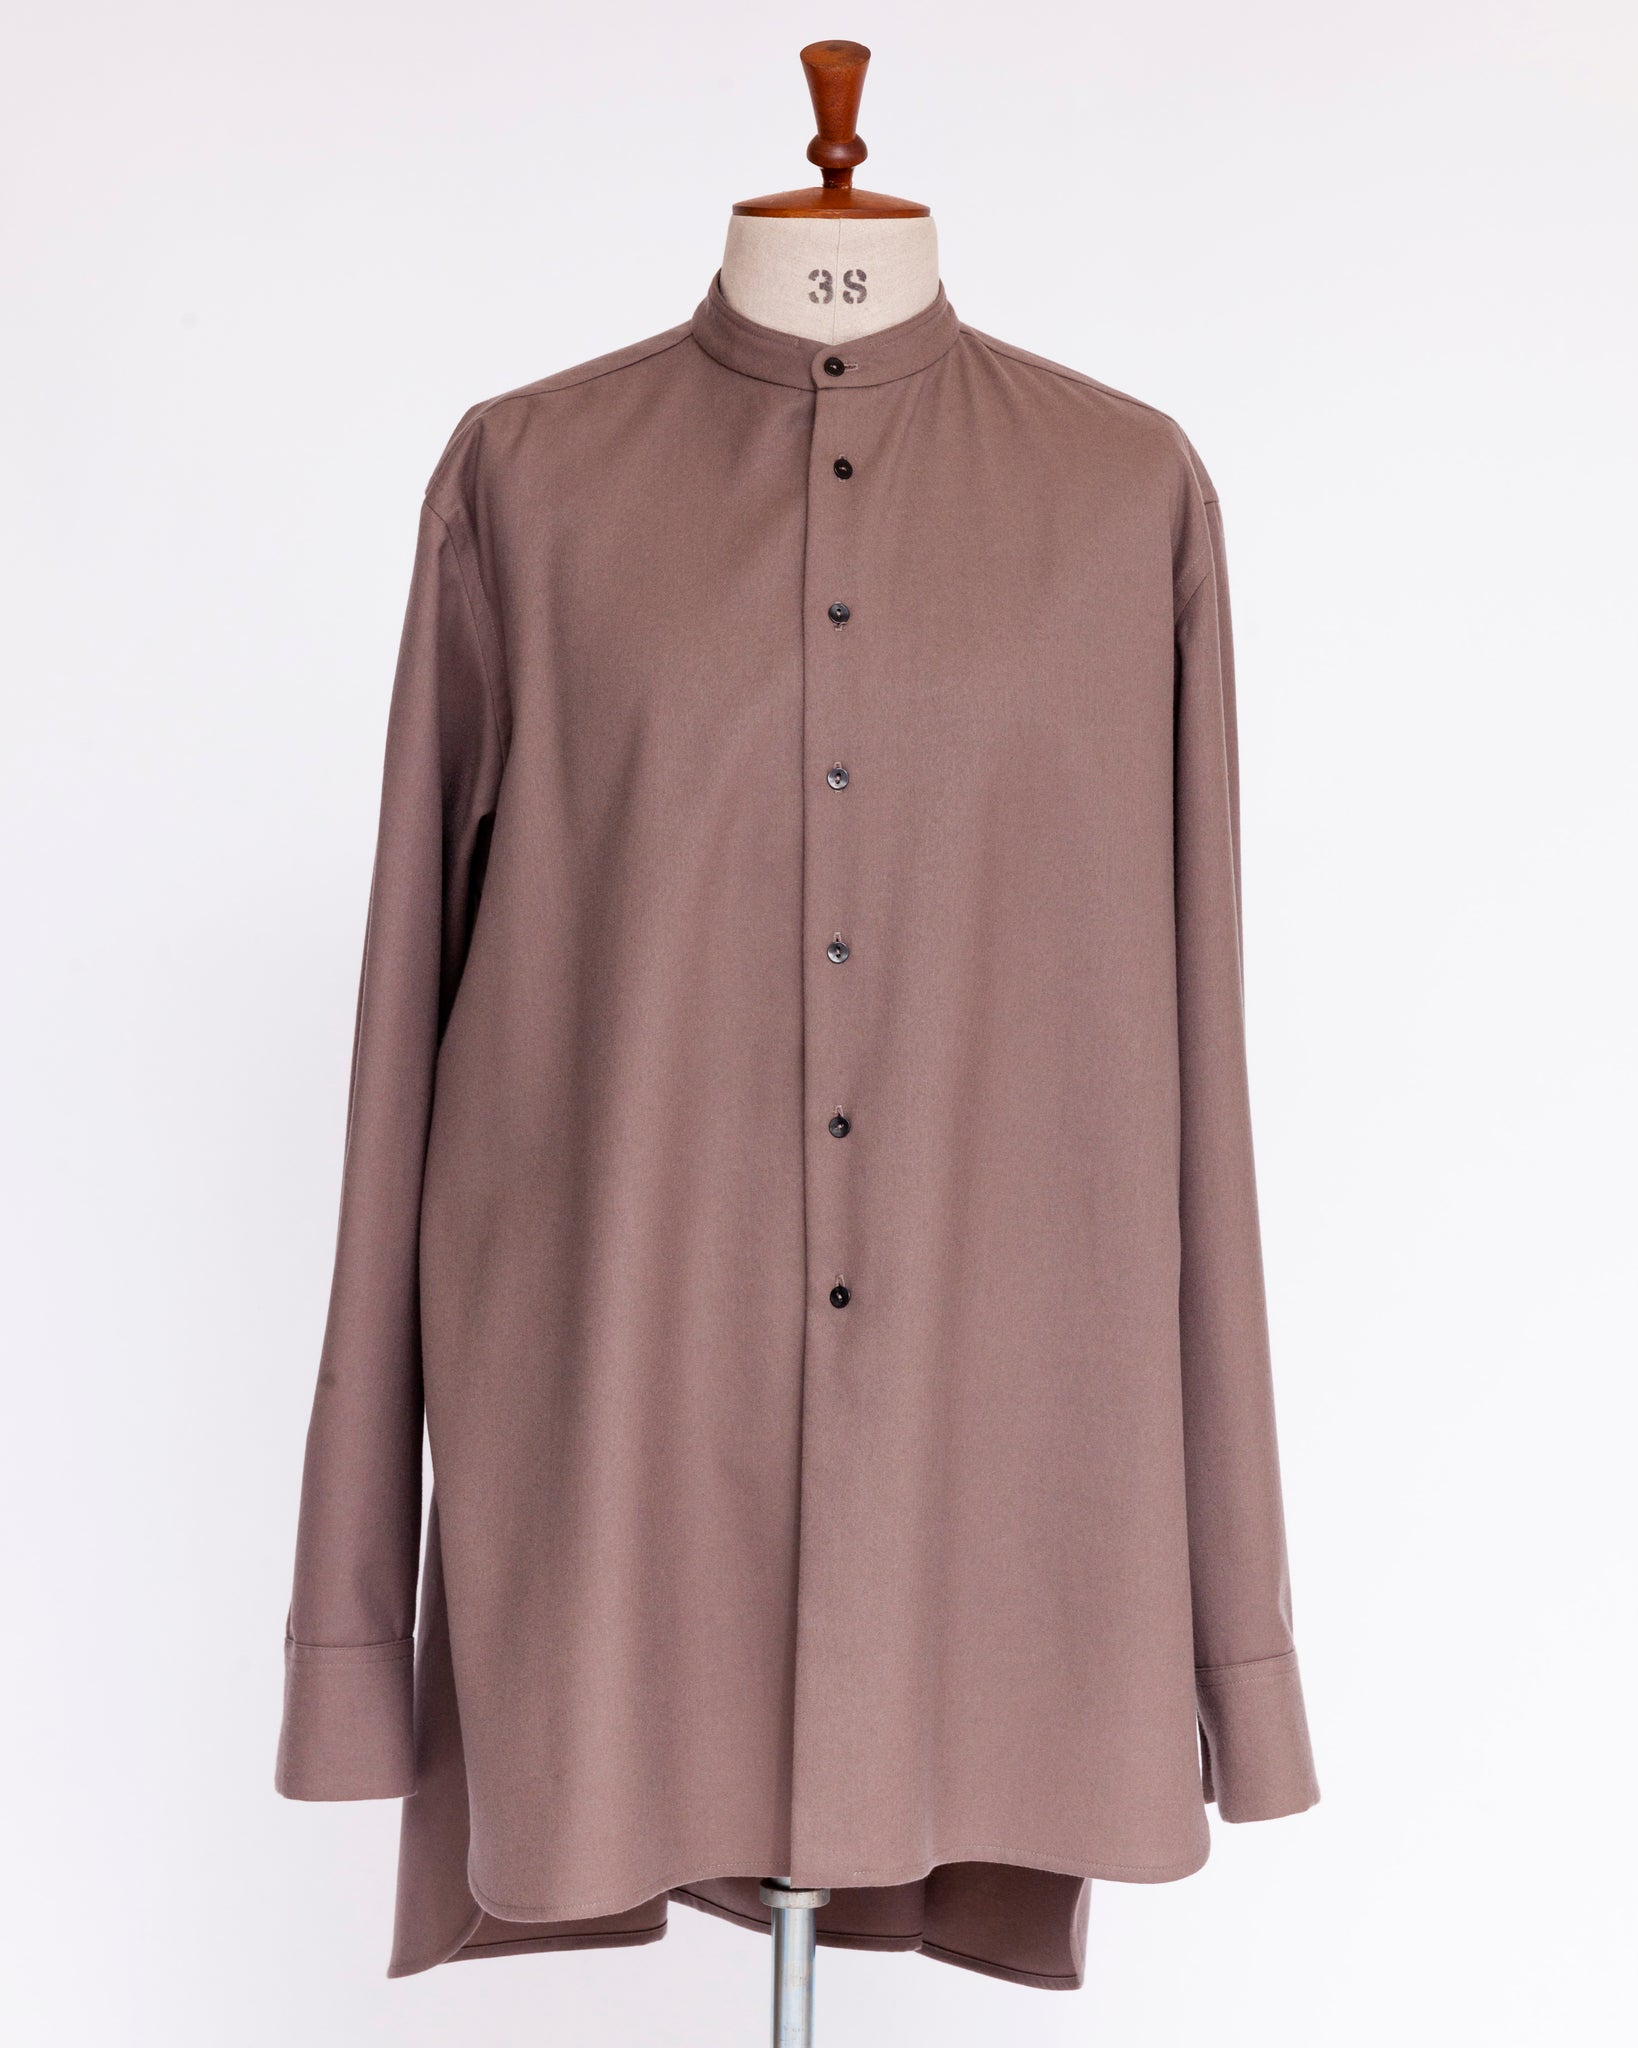 Omar Afridi No Collar Gathered Shirt Pink Grey Off Scale